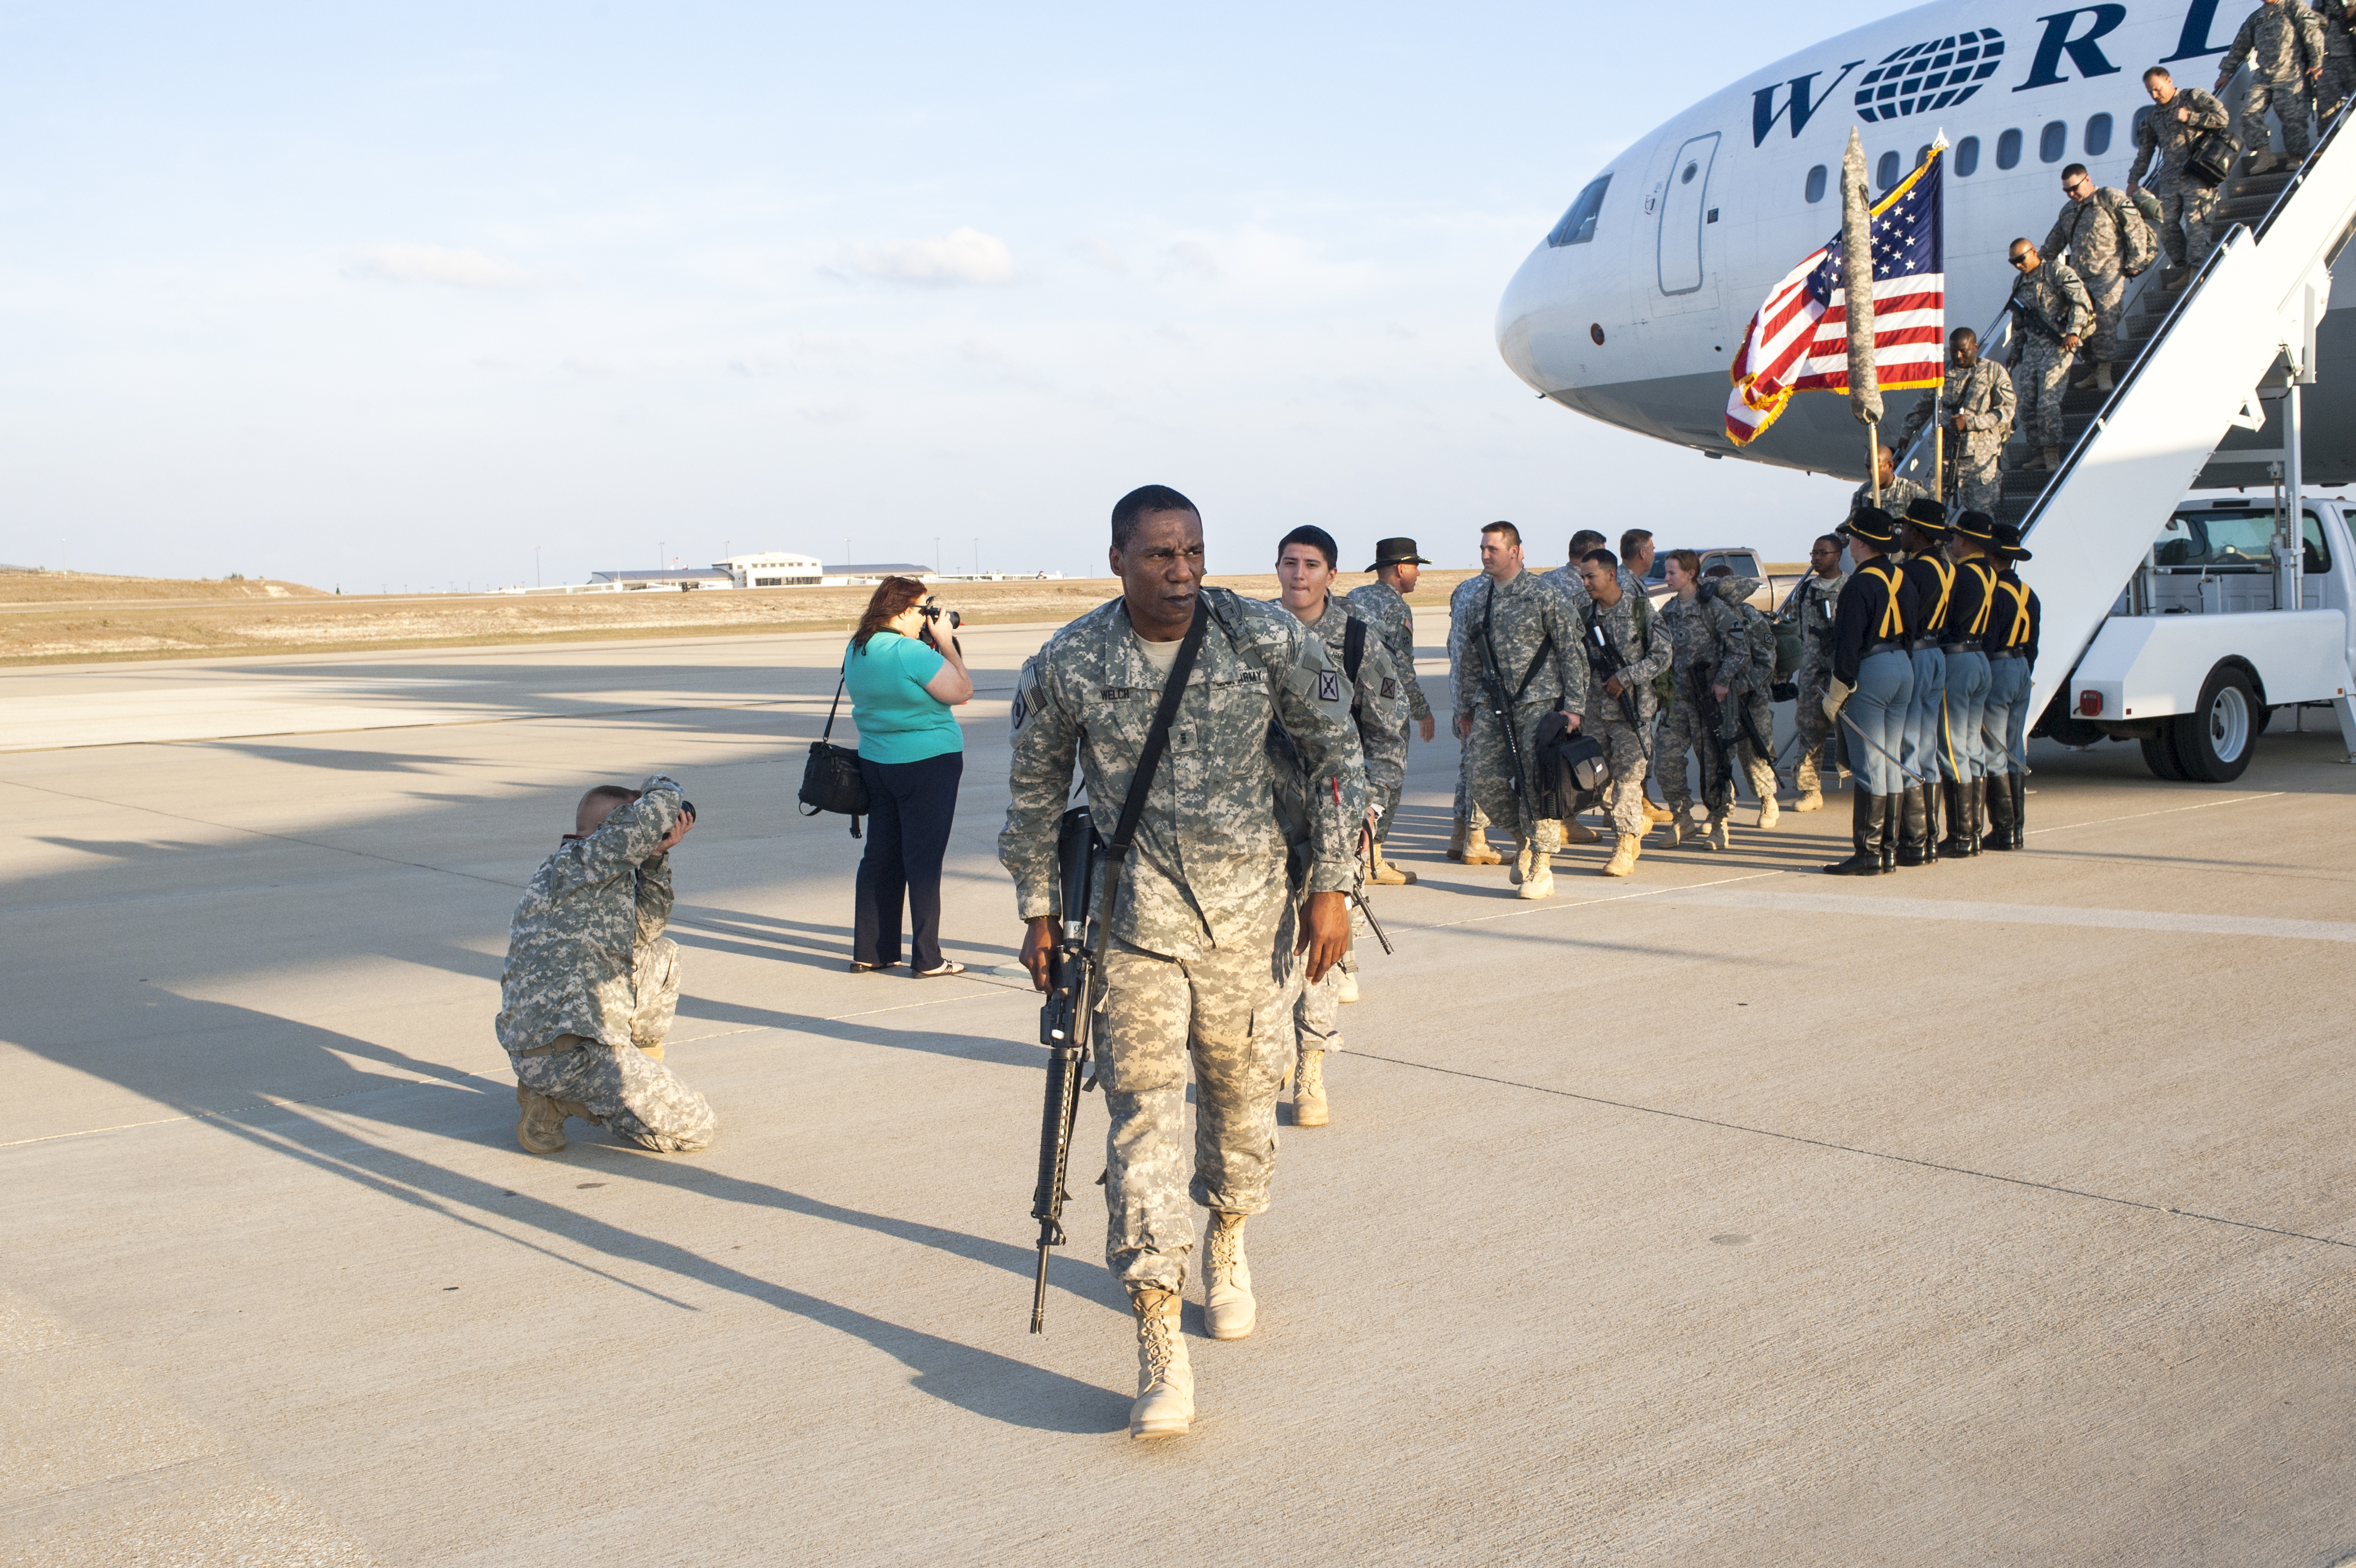 Soldiers from the 1st Cavalry Division arrive home from Iraq.                               Fort Hood, Texas. 2011